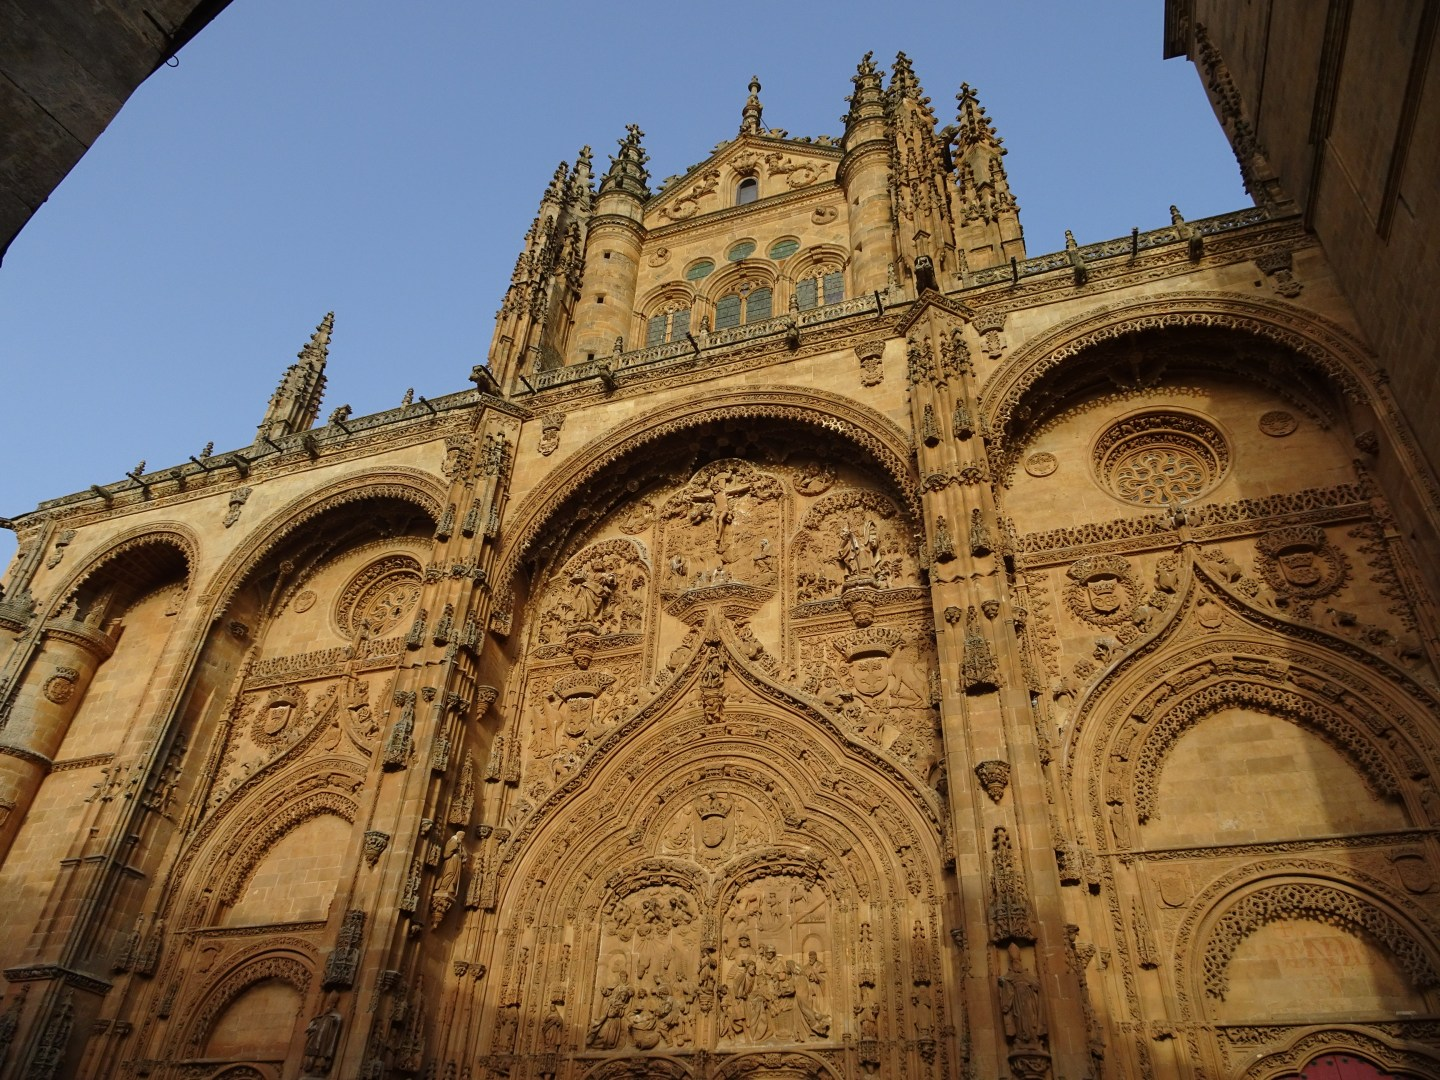 The prestigious Salamanca Cathedral